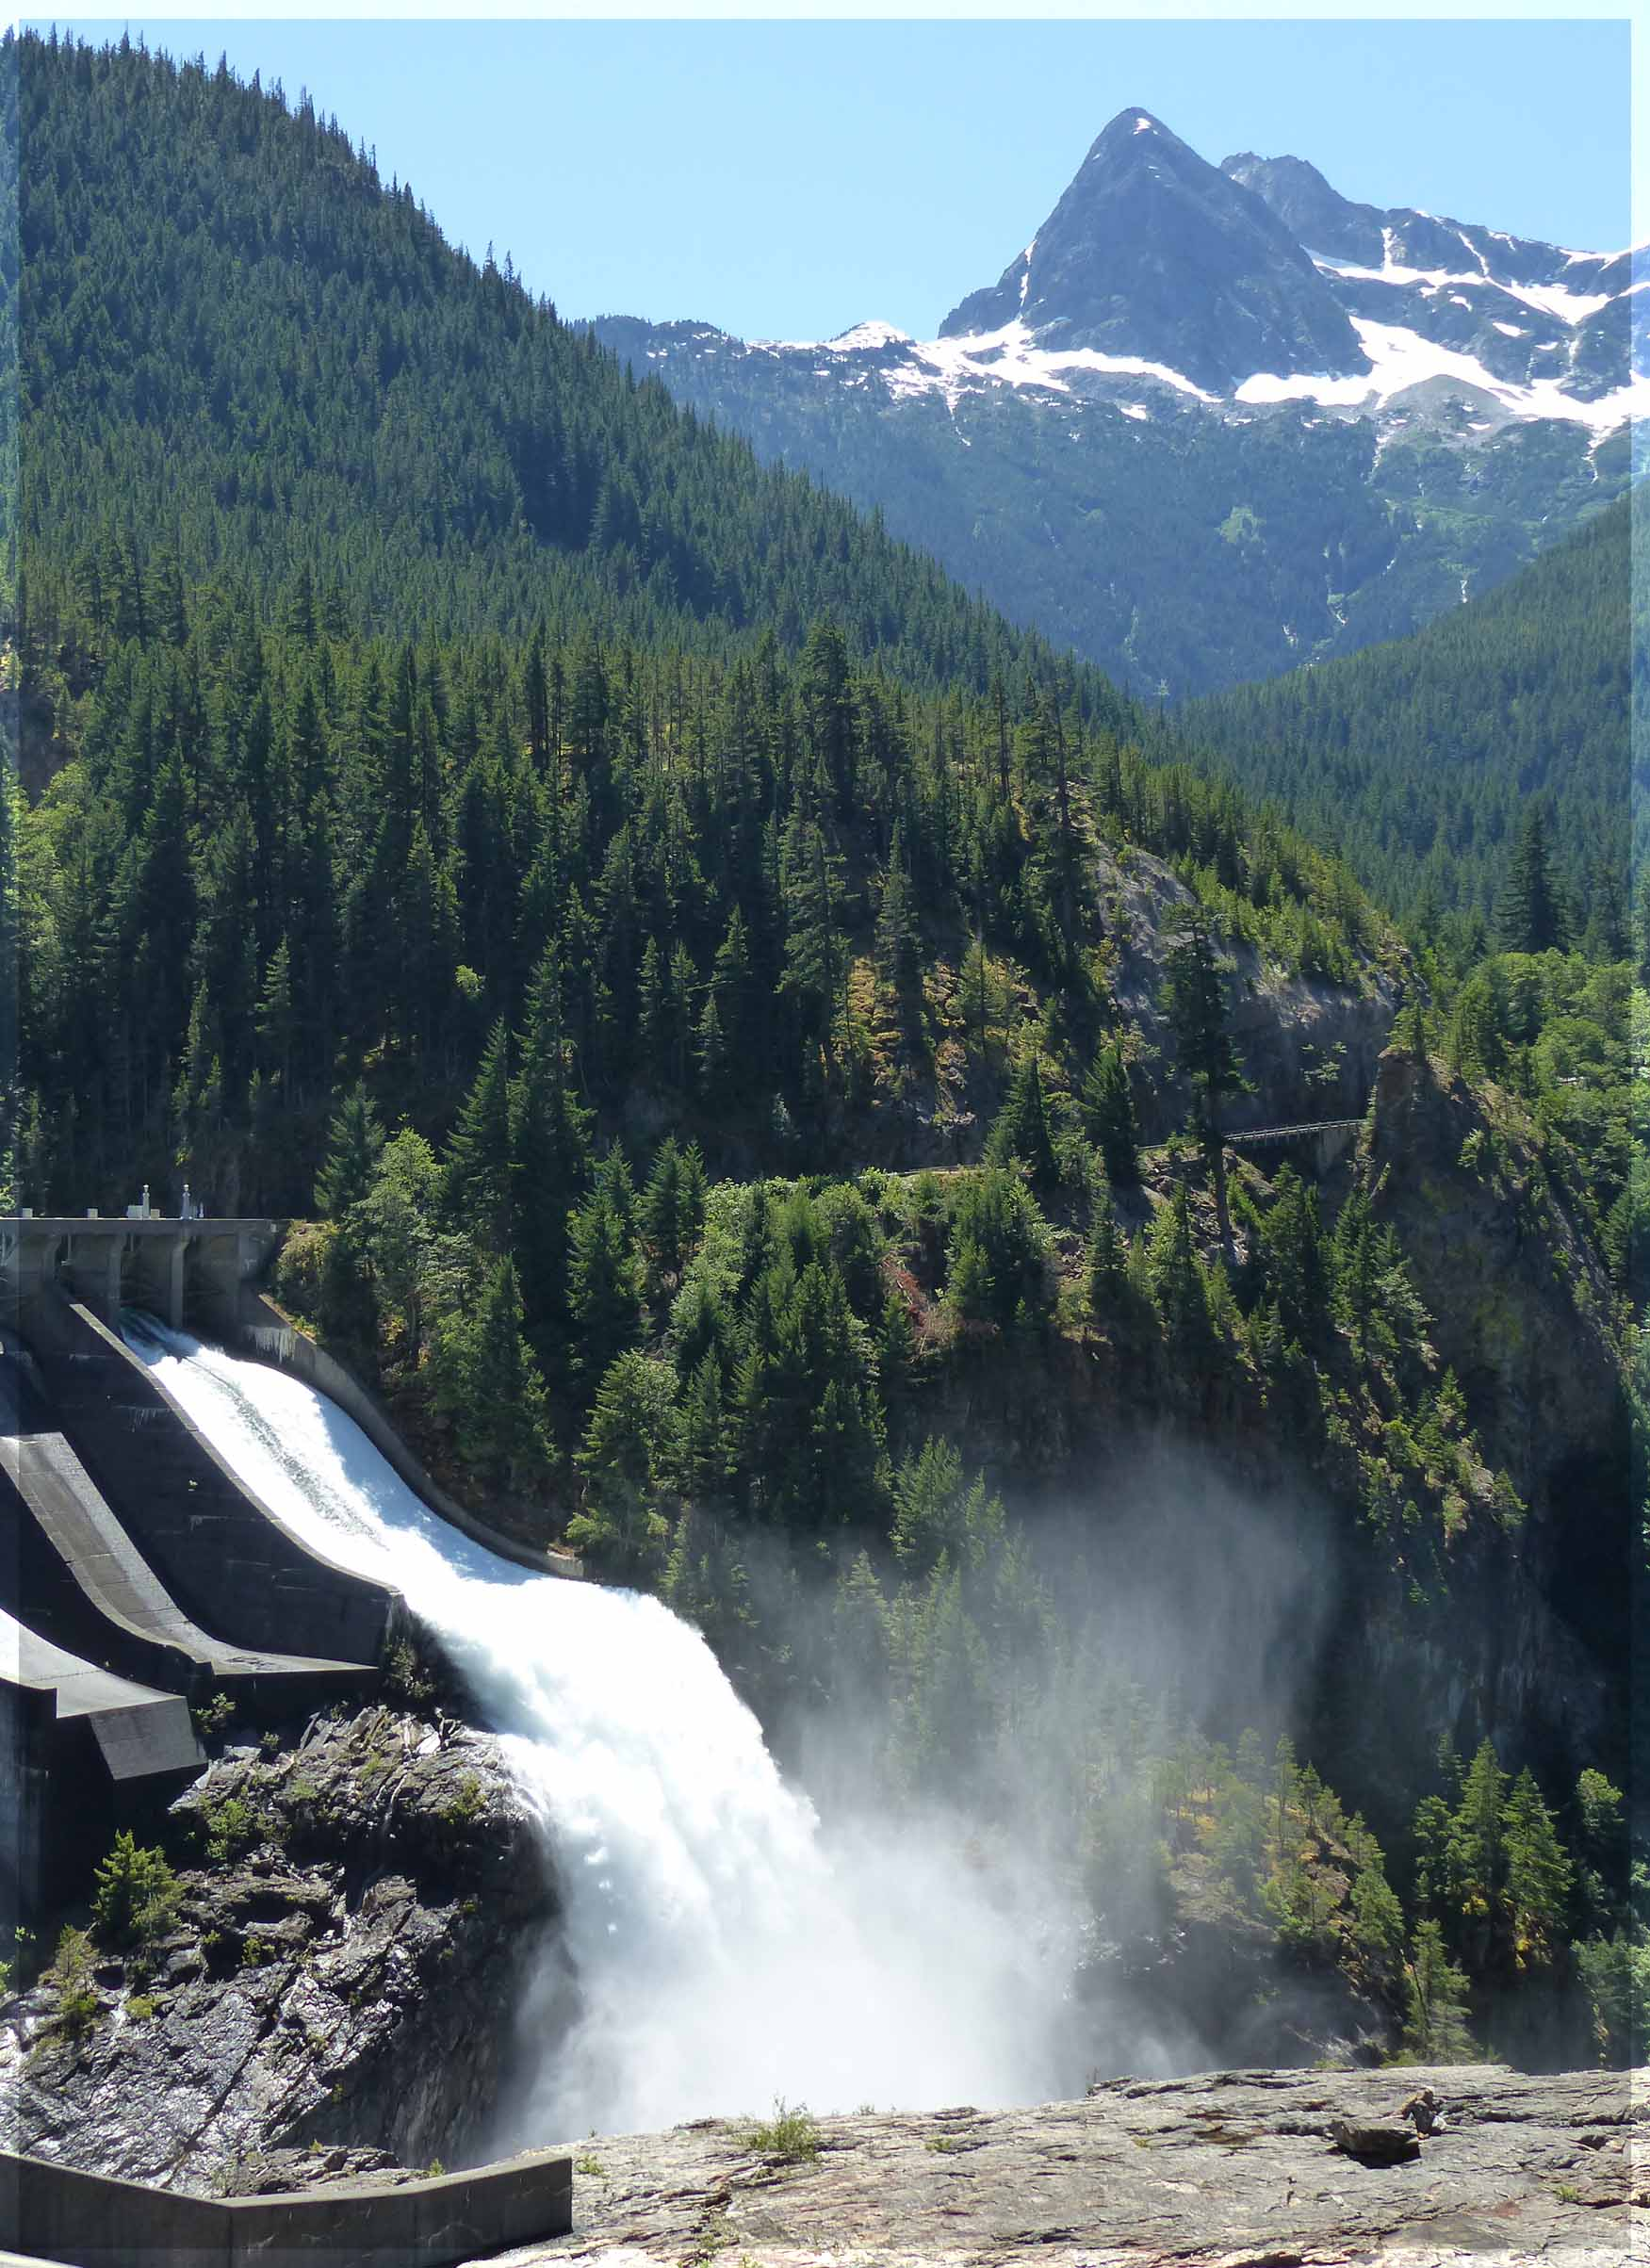 Water pouring from dam with pine covered mountains behind